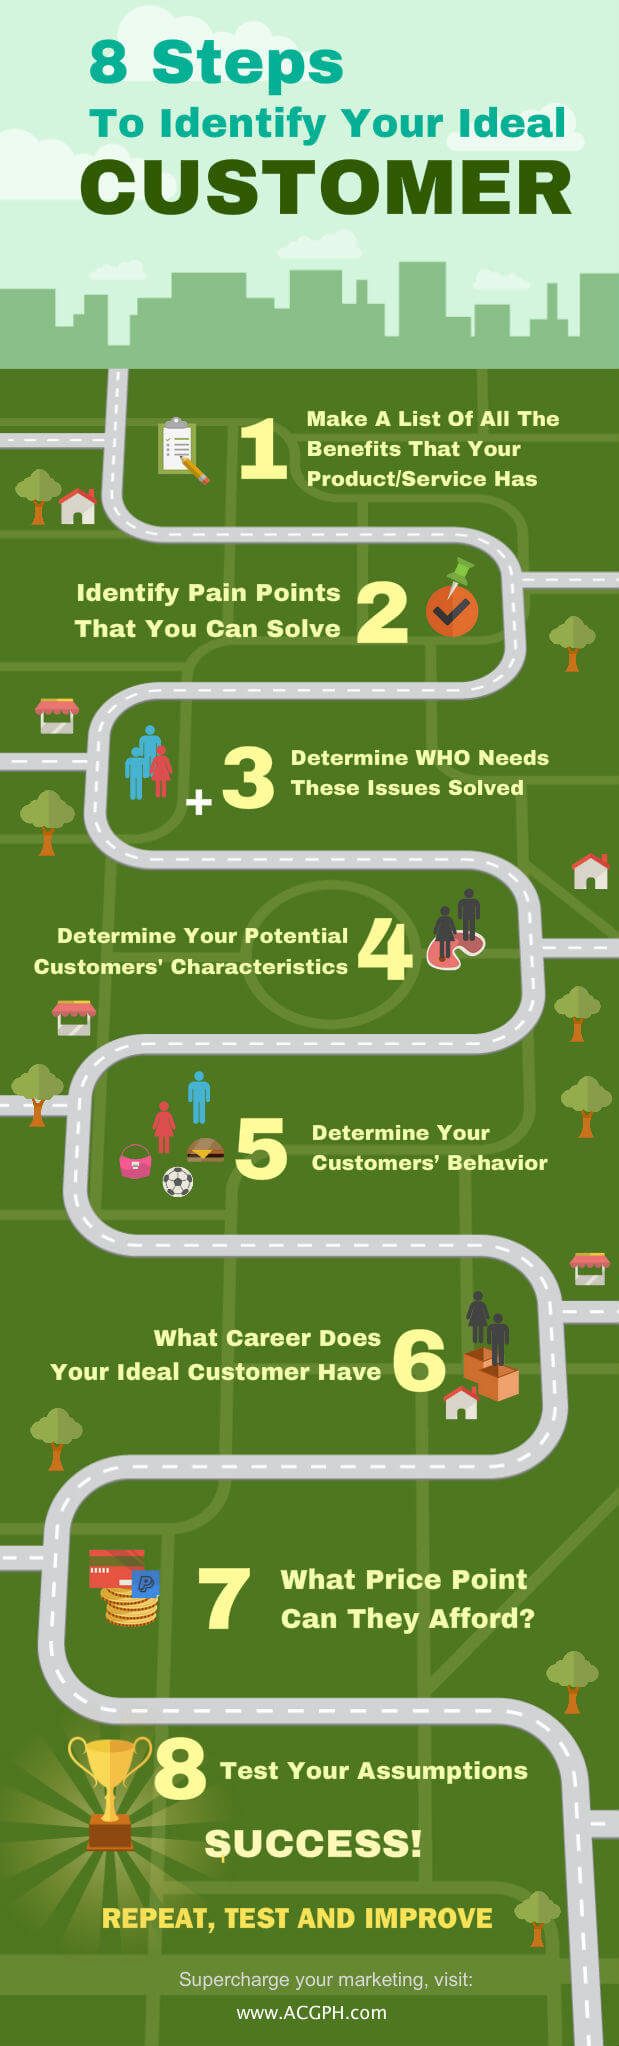 8-Steps-To-Identify-Your-Ideal-Customer